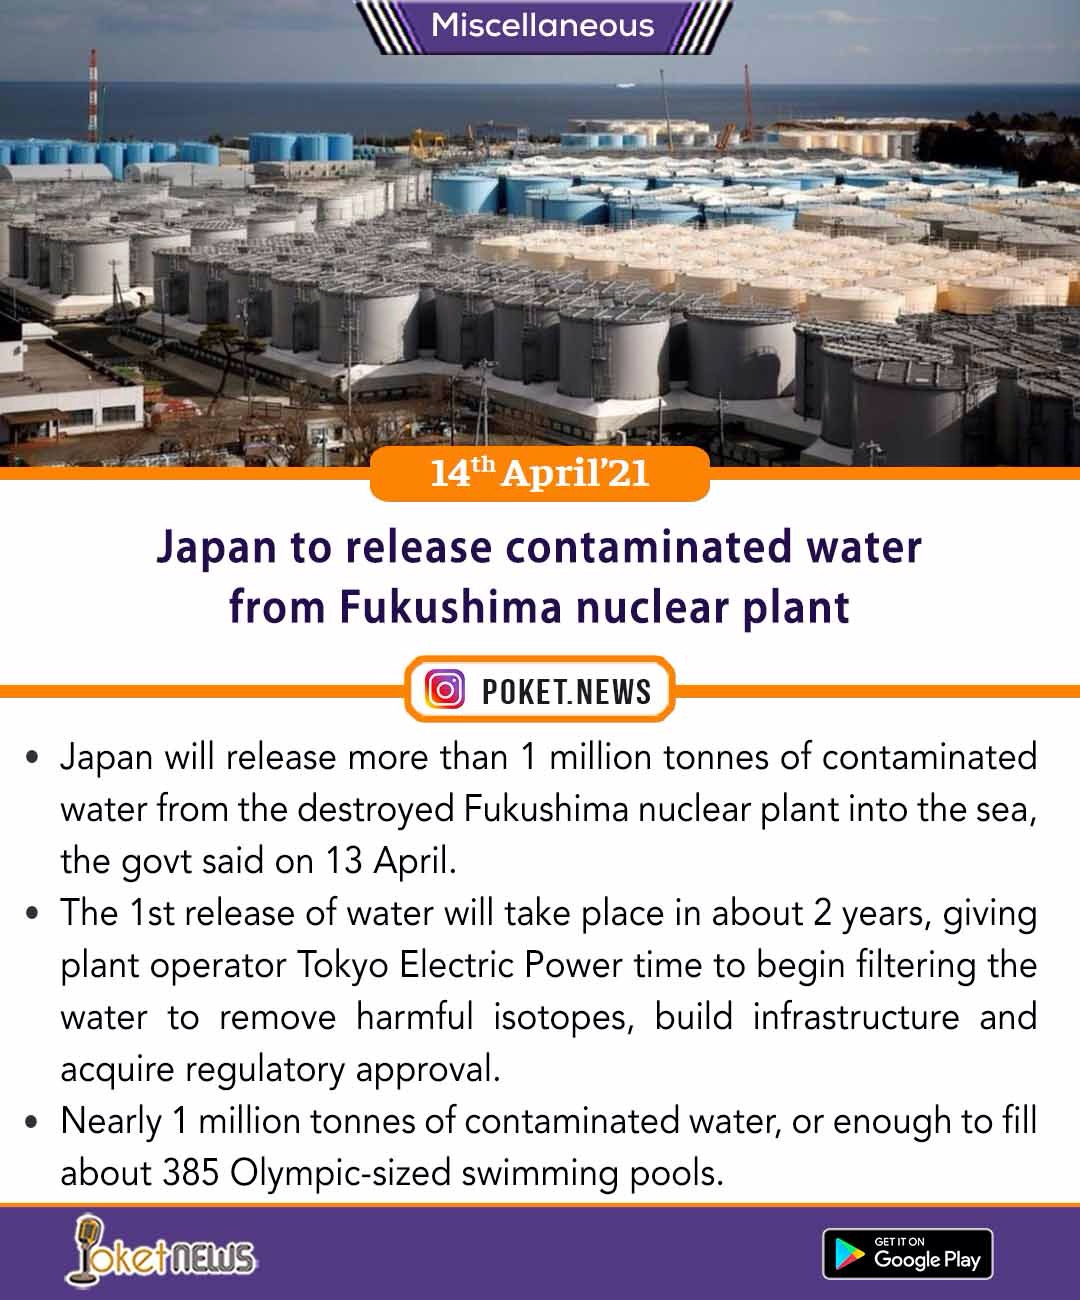 Japan to release contaminated water from Fukushima nuclear plant